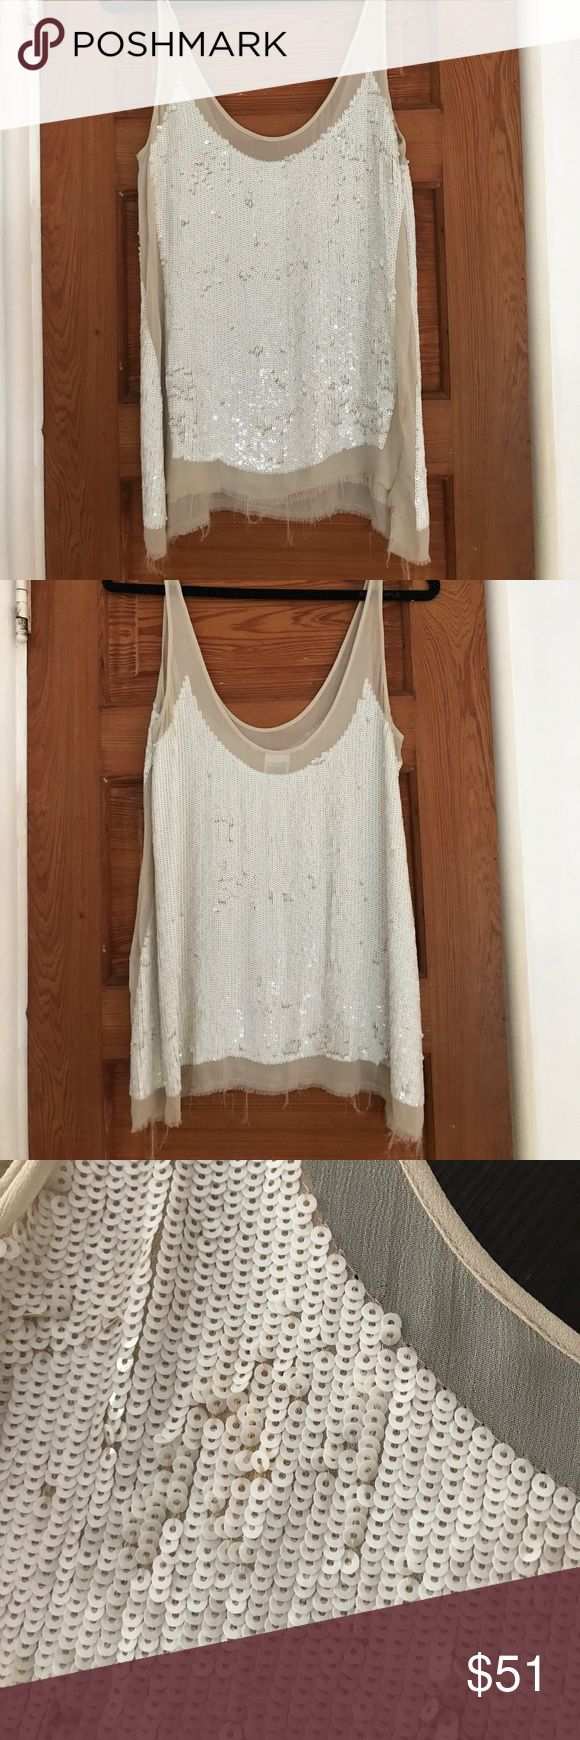 """Allsaints sequin """"Prey"""" vest top tank Swing style vest with tonal machine embellishment. The Prey Vest is panelled to create the key design feature of sheer silk fabric at the side seams and features a raw edge hem. Color: white UK12=US8 perfect like new condition, from Allsaints display All Saints Tops"""